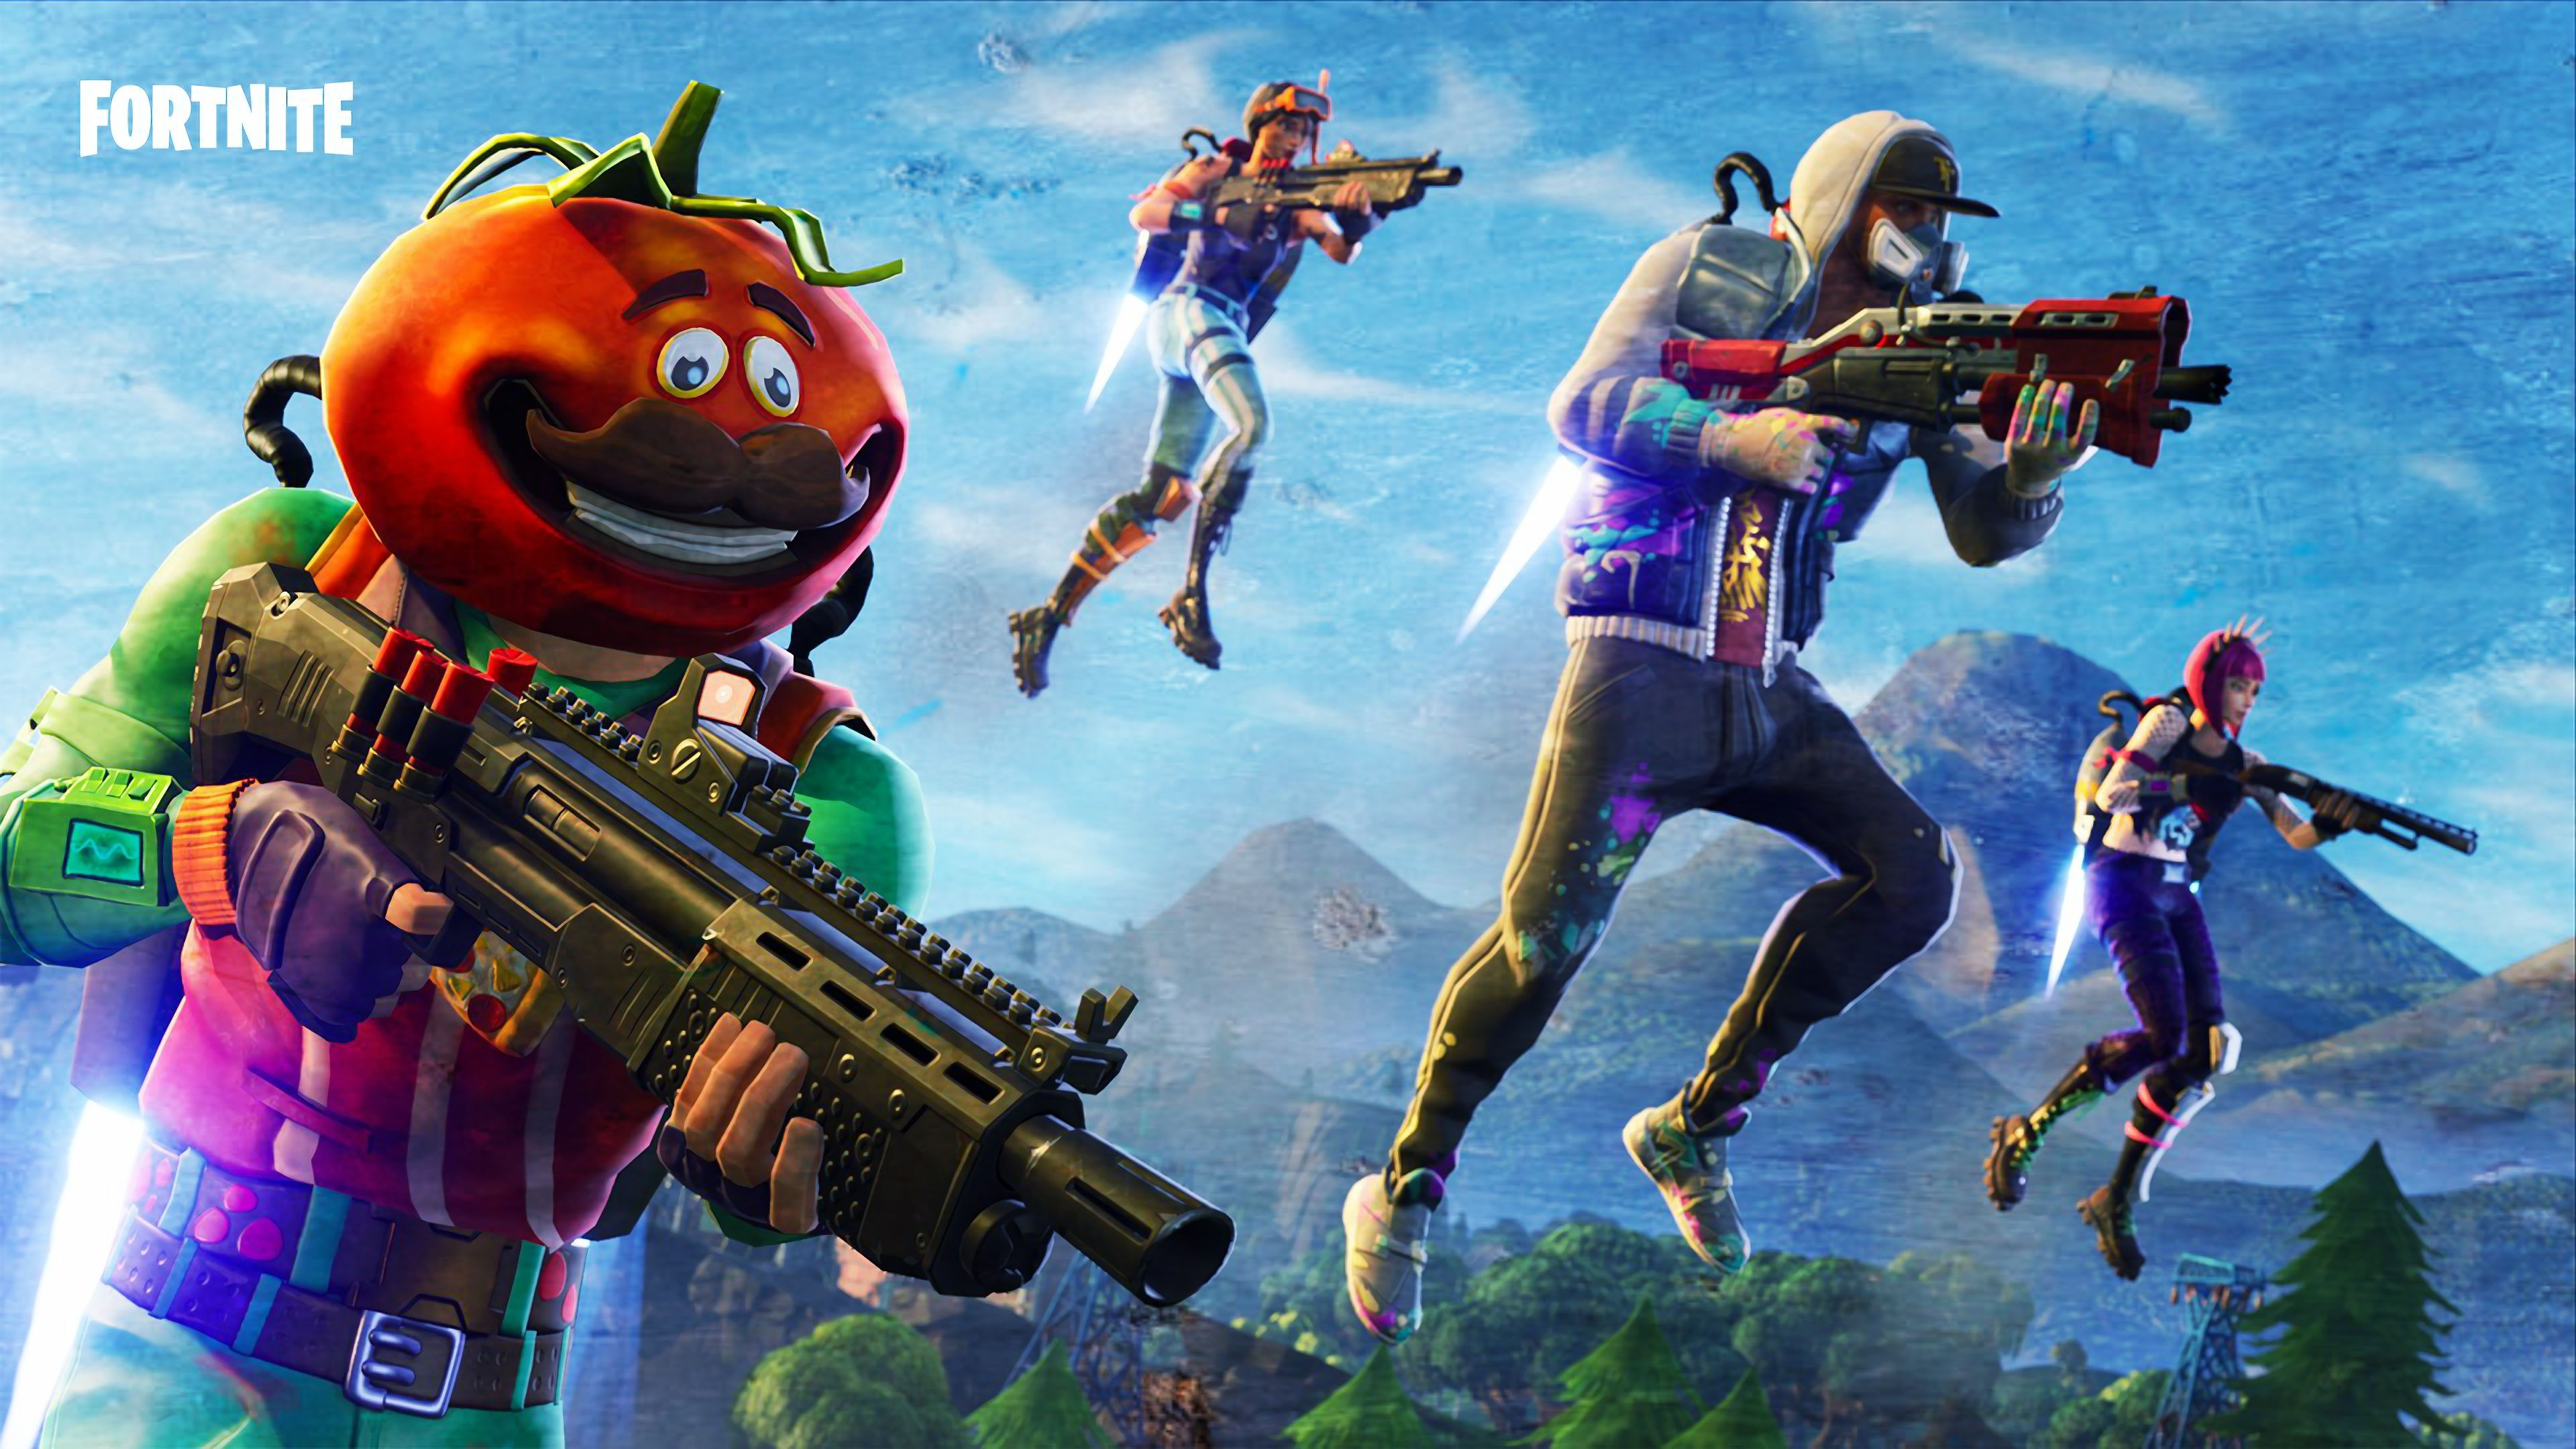 Fortnite 4k Wallpapers Game Ps Games Wallpapers Hd Wallpapers Games Wallpapers Fortnite Wallpapers 4k Wallpapers Epic Games Fortnite Epic Games Ios Games